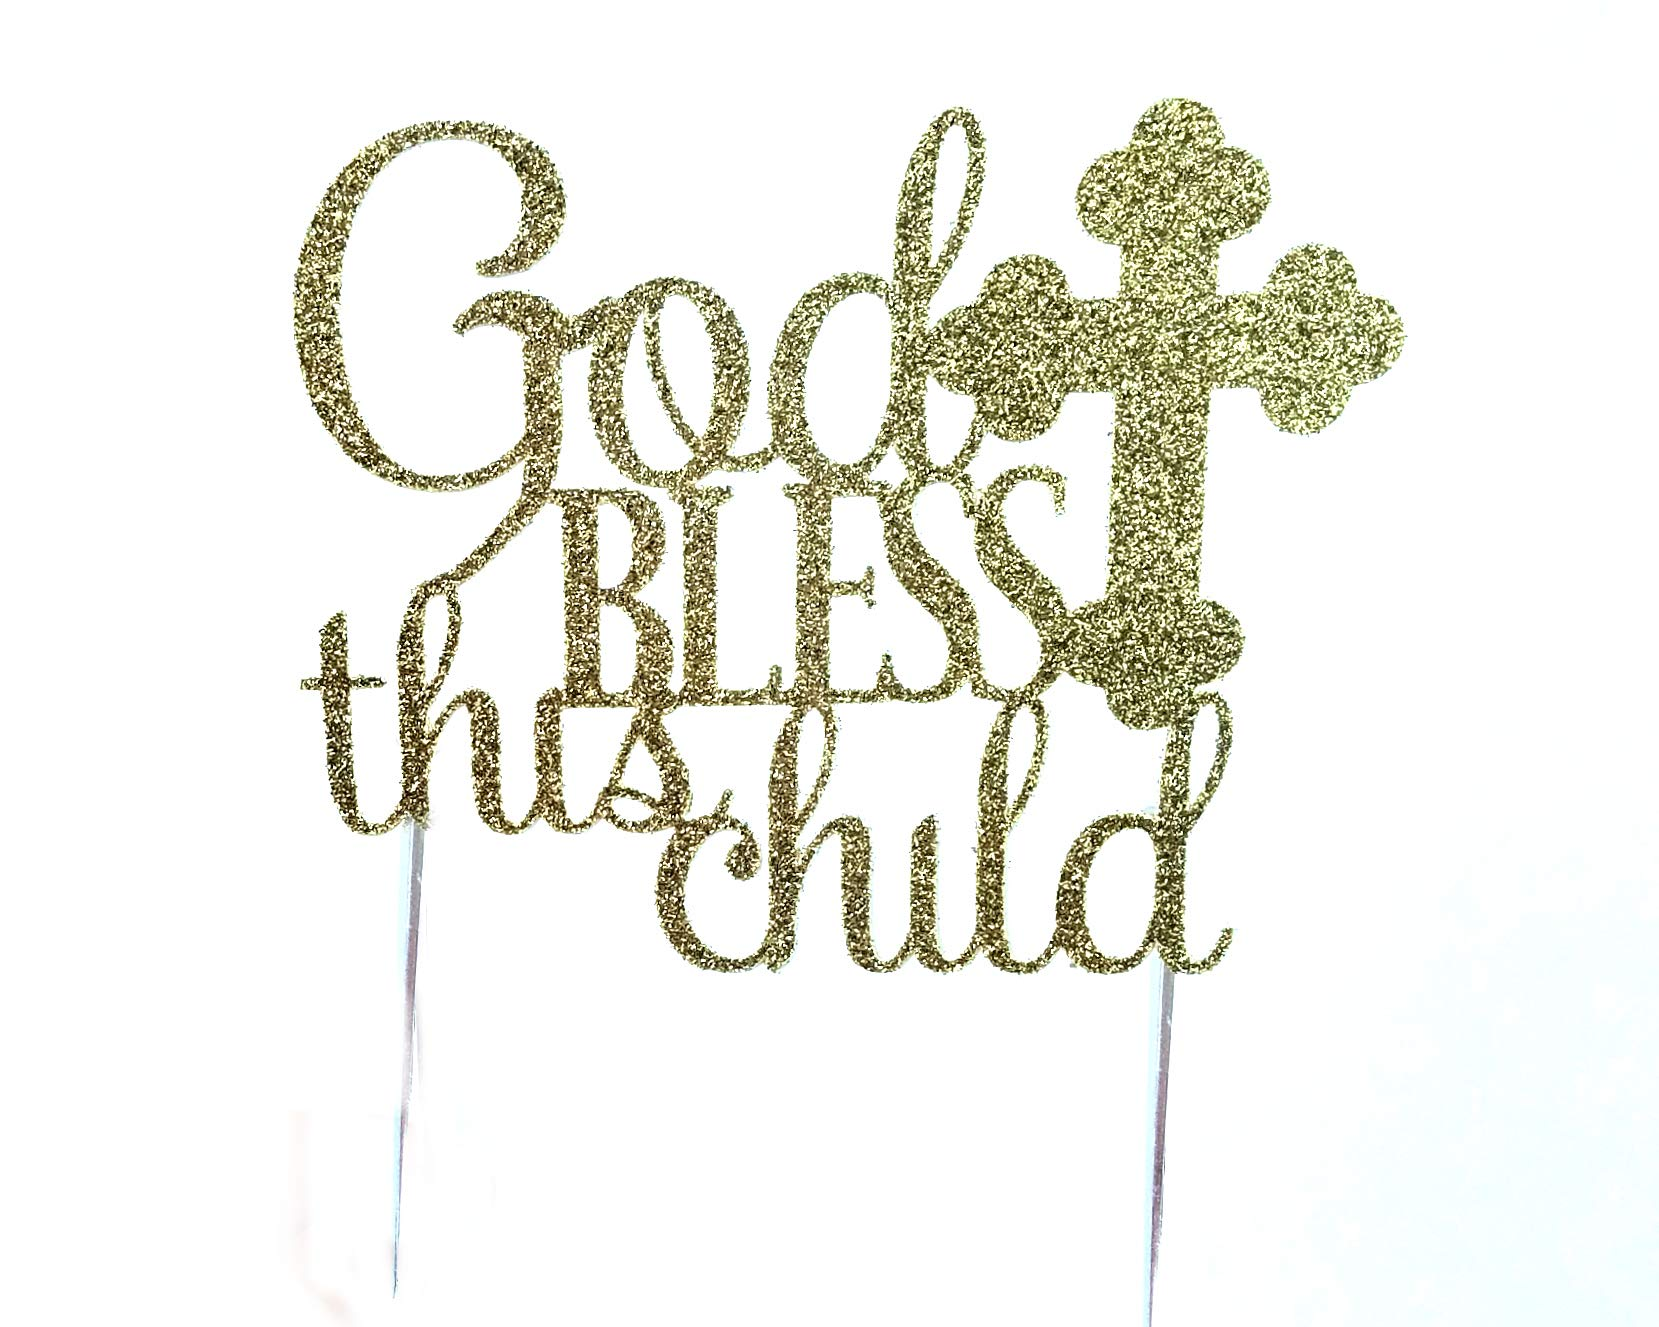 Handmade Baptism, Confirmation Cake Topper Decoration - Bless This Child - Made in USA with Double Sided Gold Glitter Stock